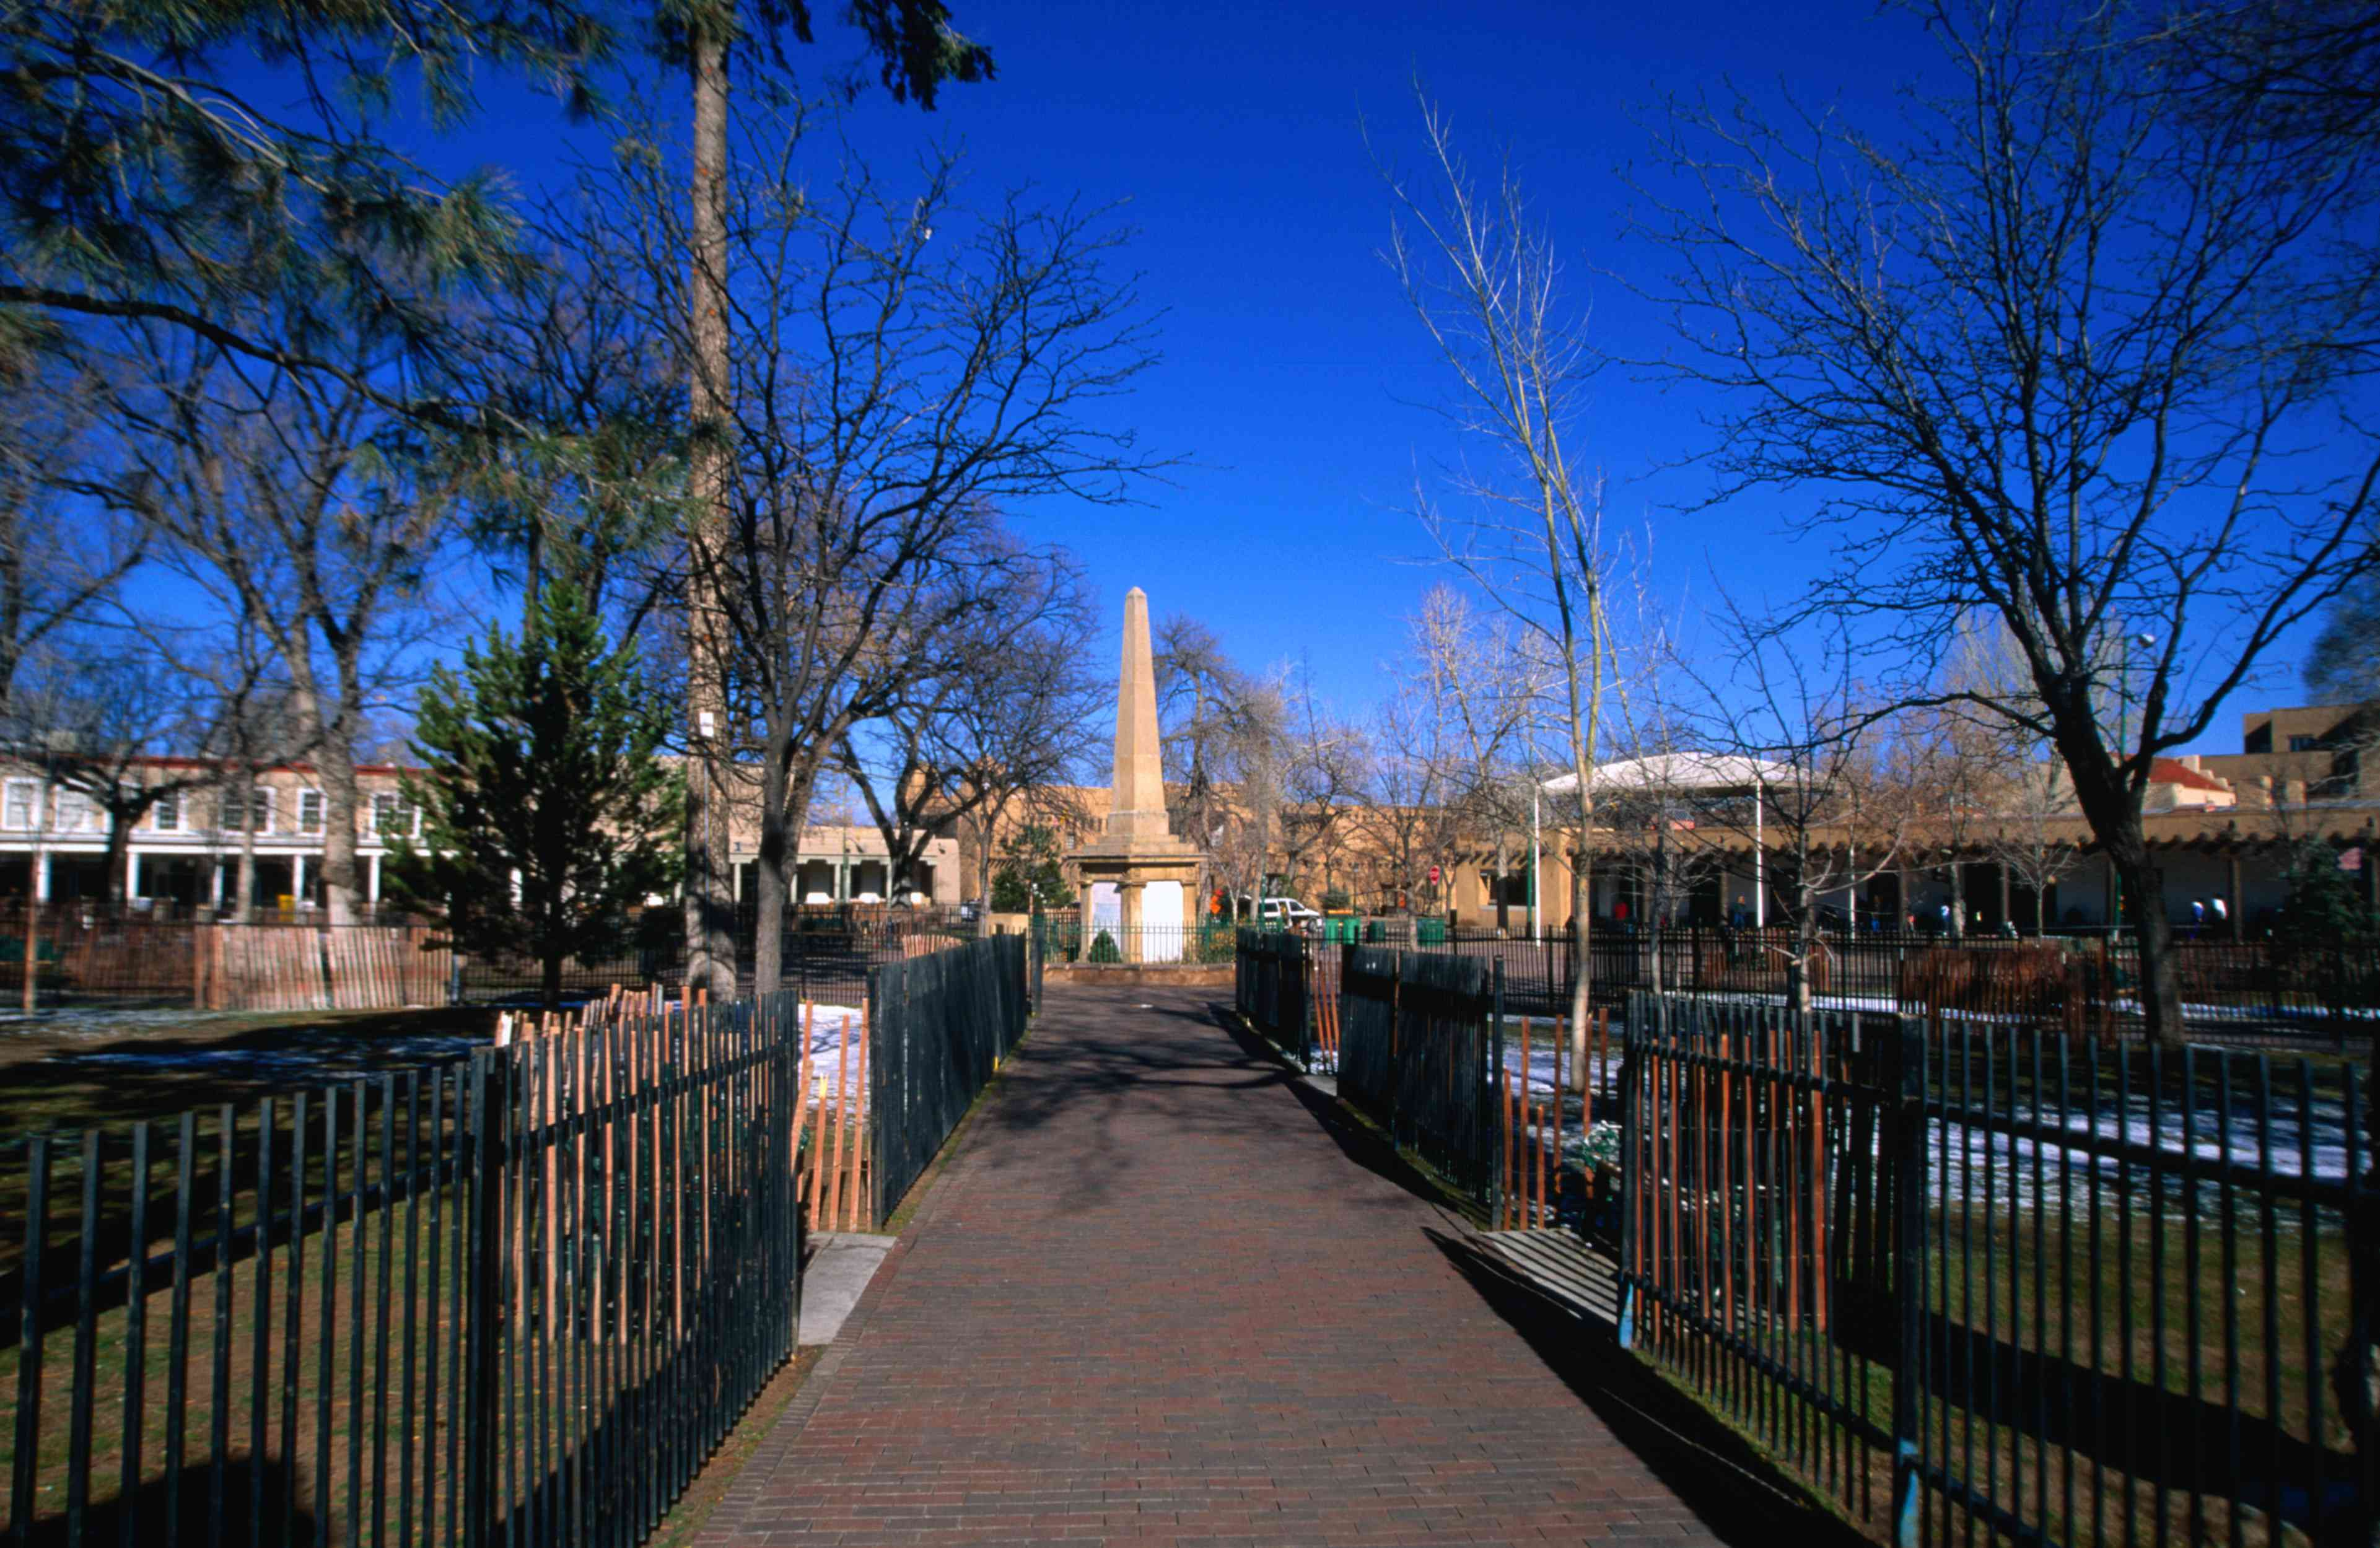 Trees and grass behind a black iron fence lining a brick pedestrian path leading to a plaza in downtown New Mexico under a vivid blue sky on a sunny day